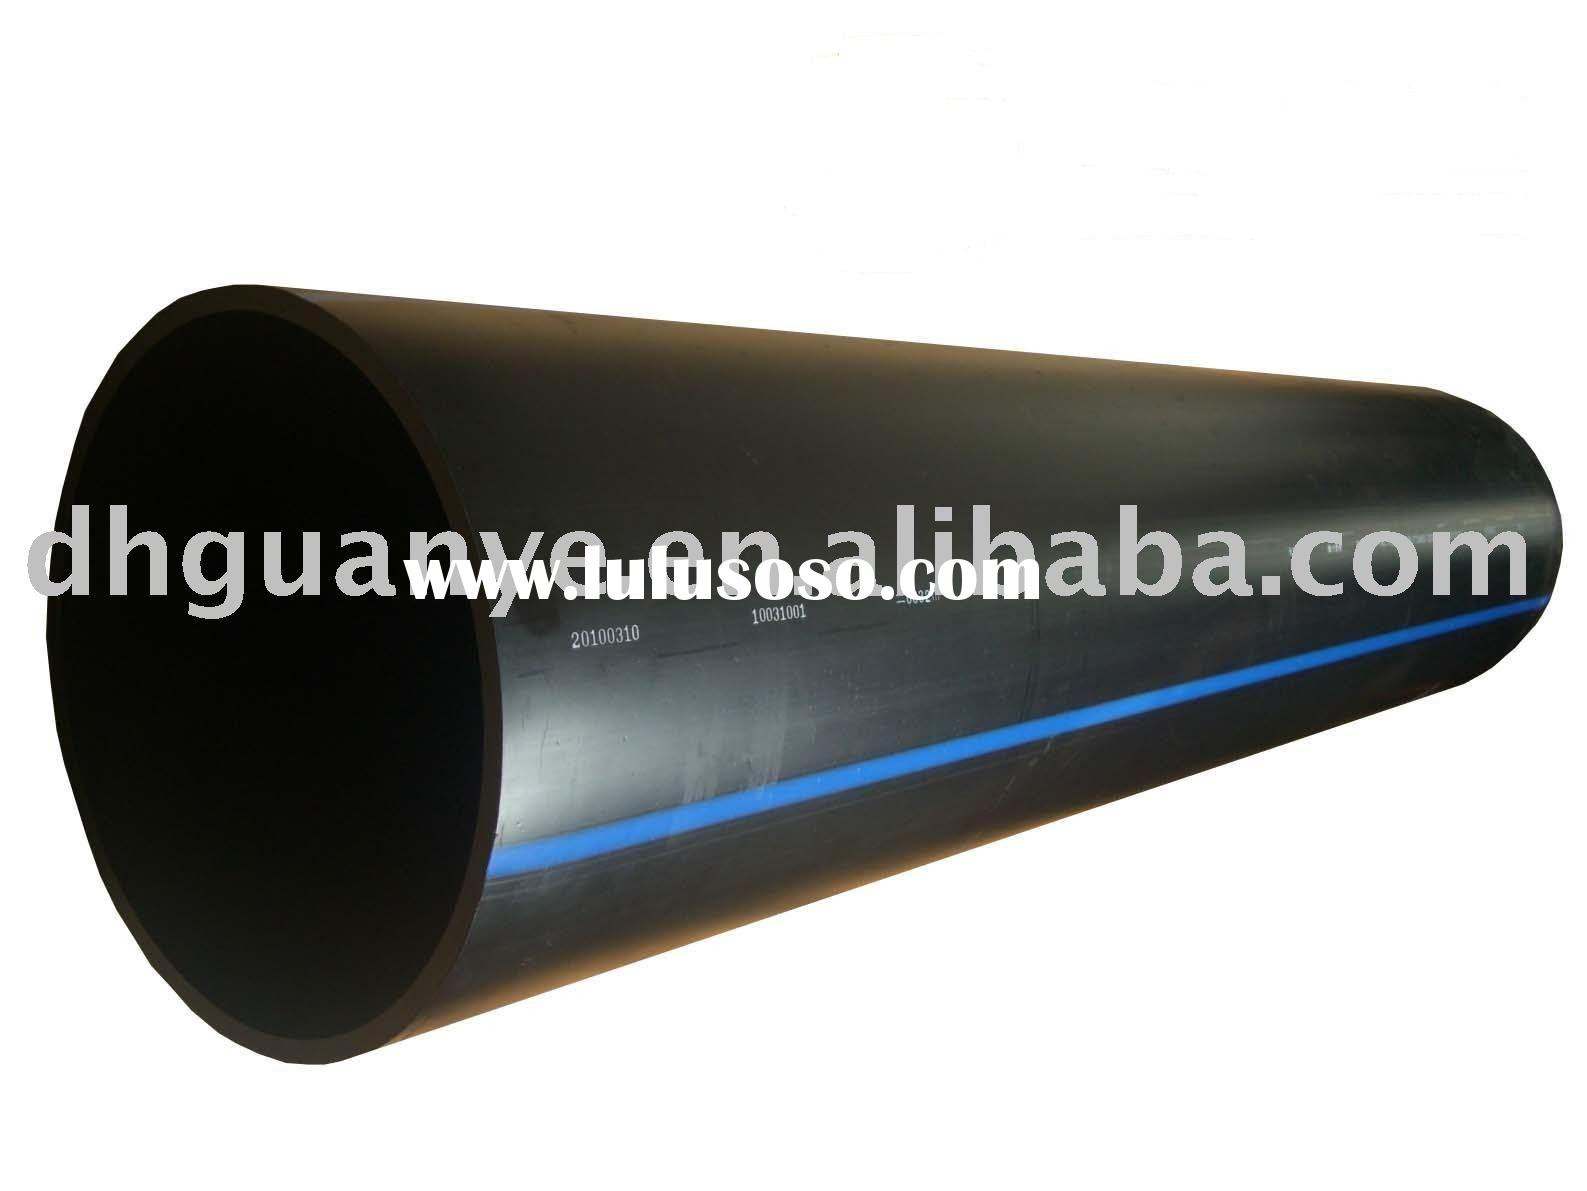 Large diameter HDPE pipe and fittings for water supply